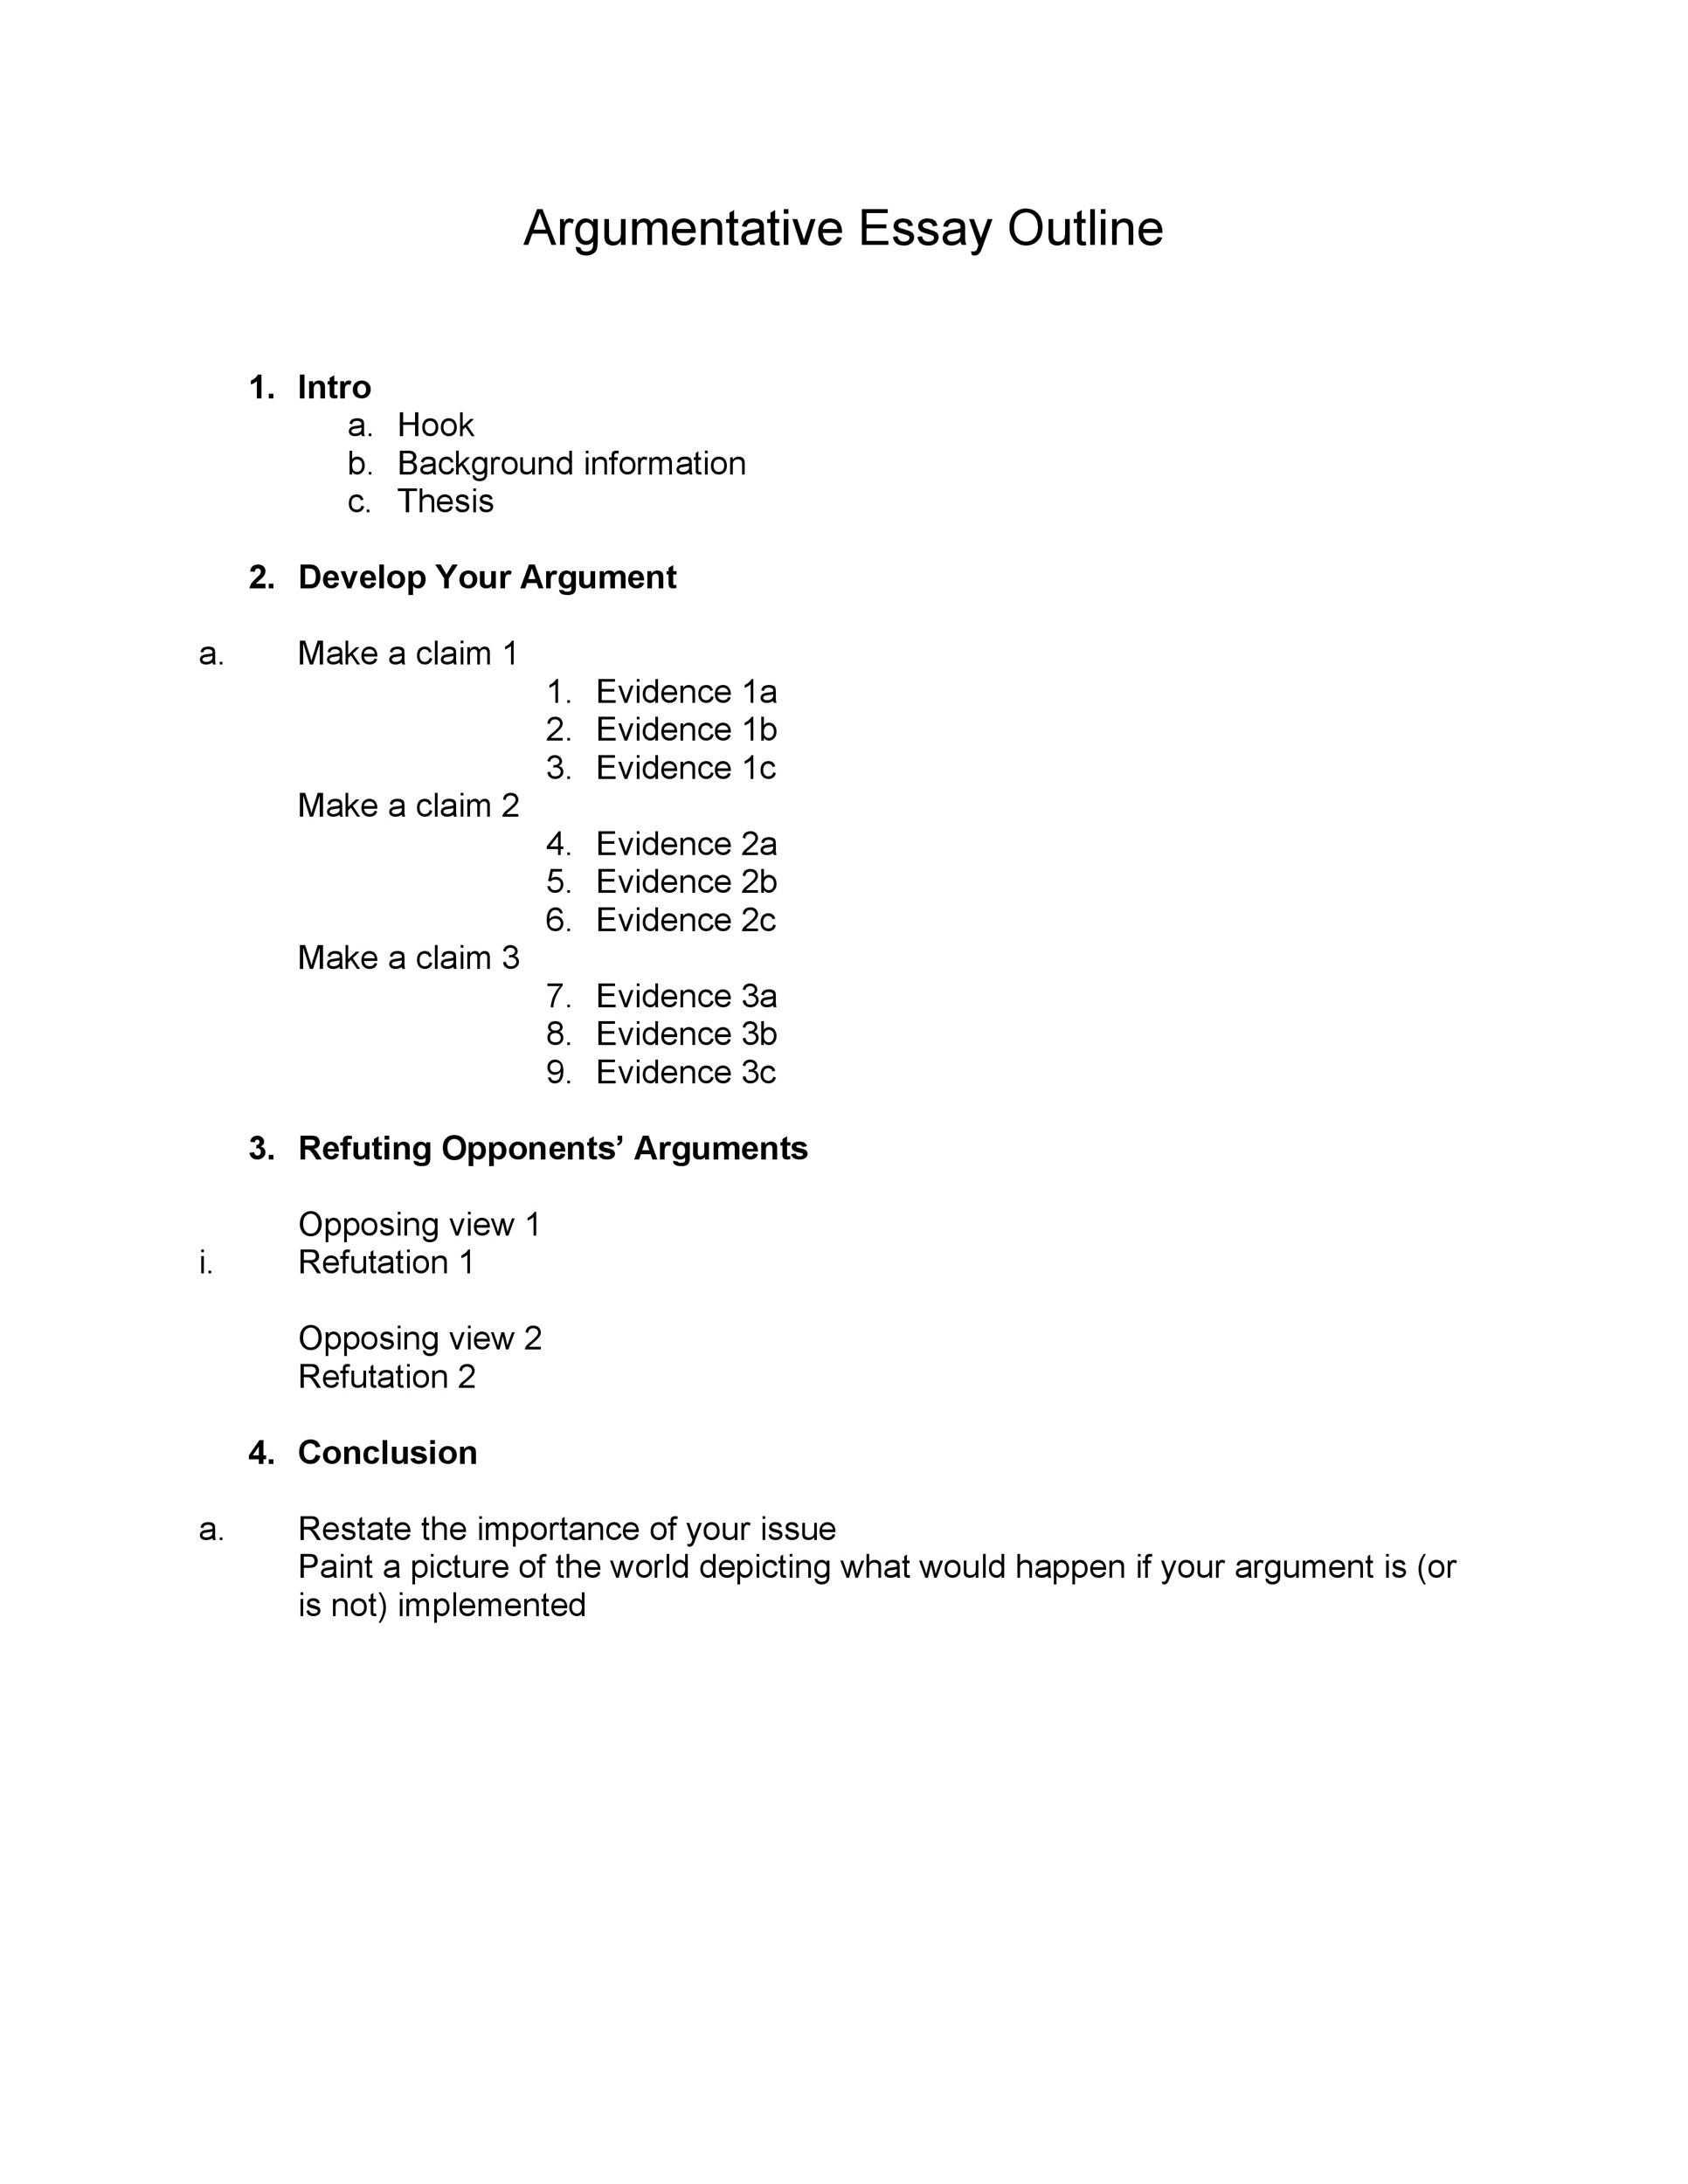 Outline for a argumentative essay boat jeremyeaton co